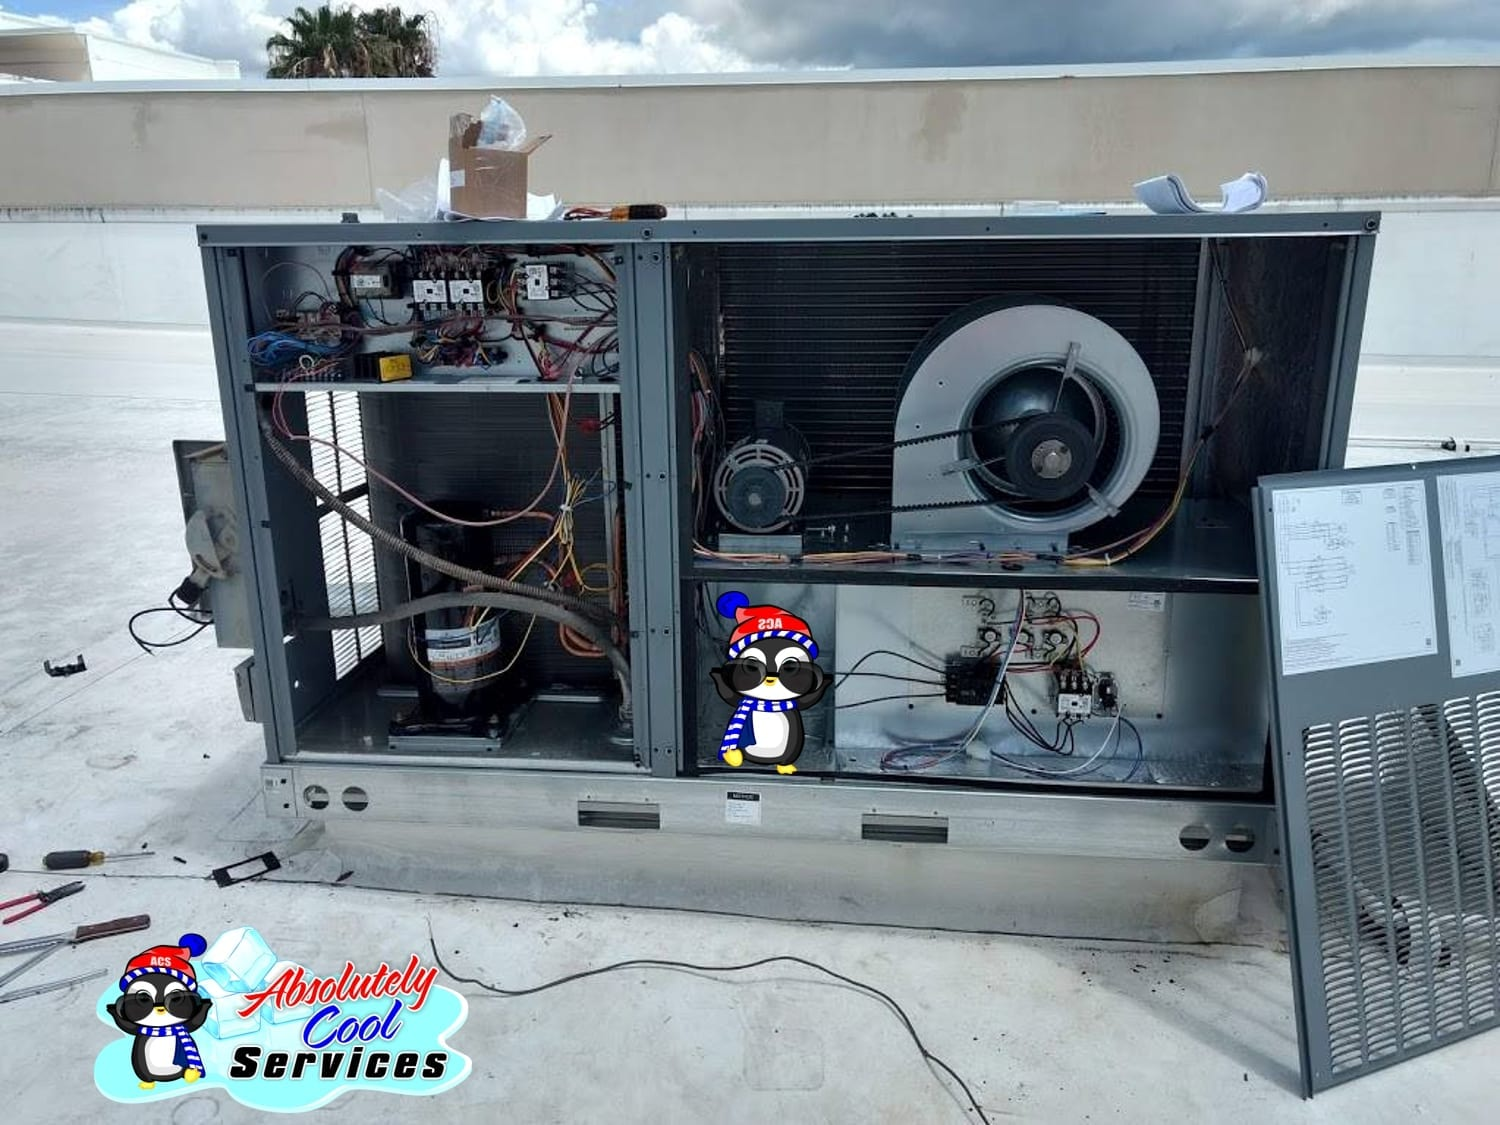 Roof Air Conditioning | HVAC Installation Company near Boynton Beach